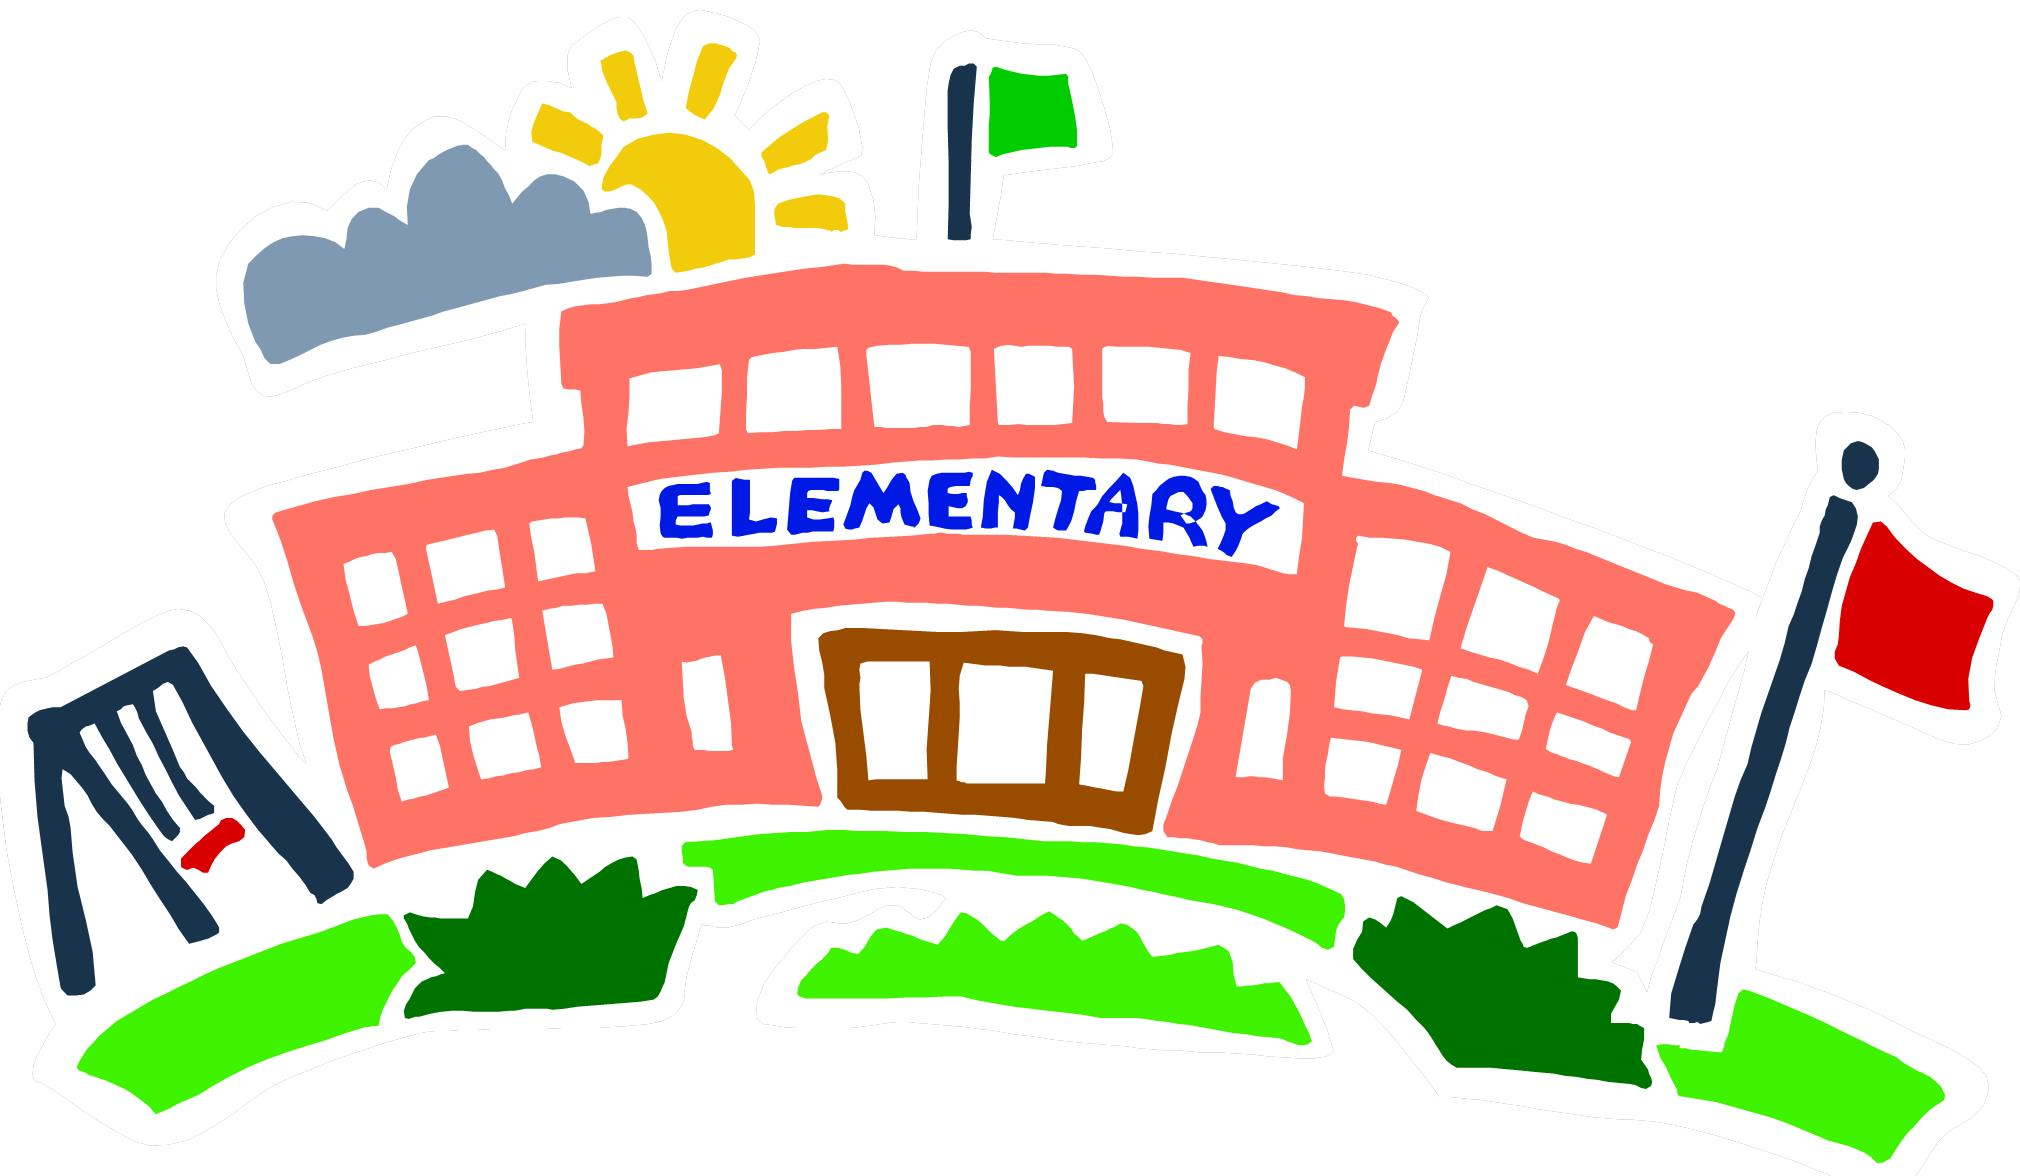 elementary clipart amp look at elementary clip art images